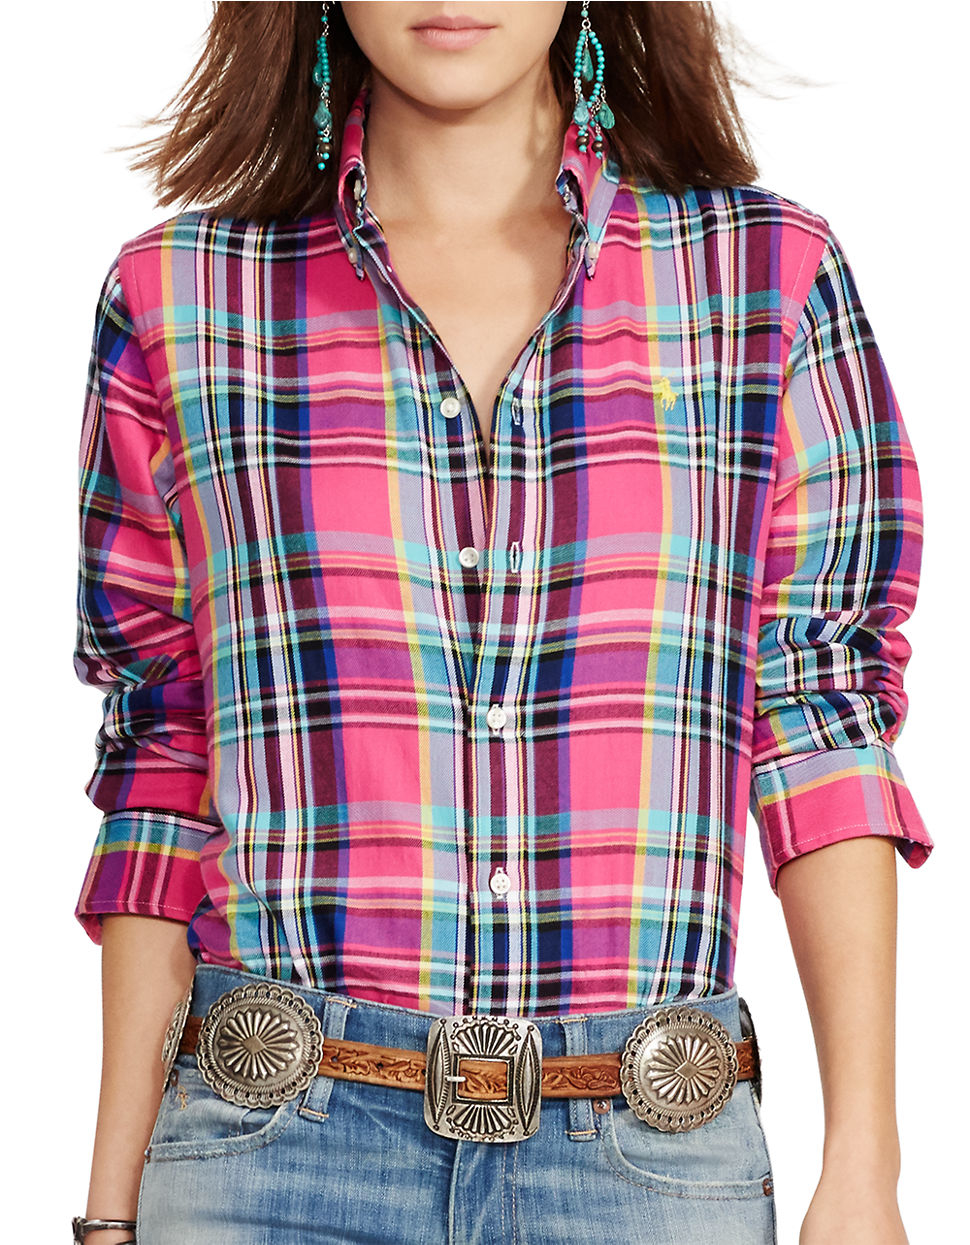 Lyst - Polo Ralph Lauren Plaid Cotton Twill Shirt in Pink